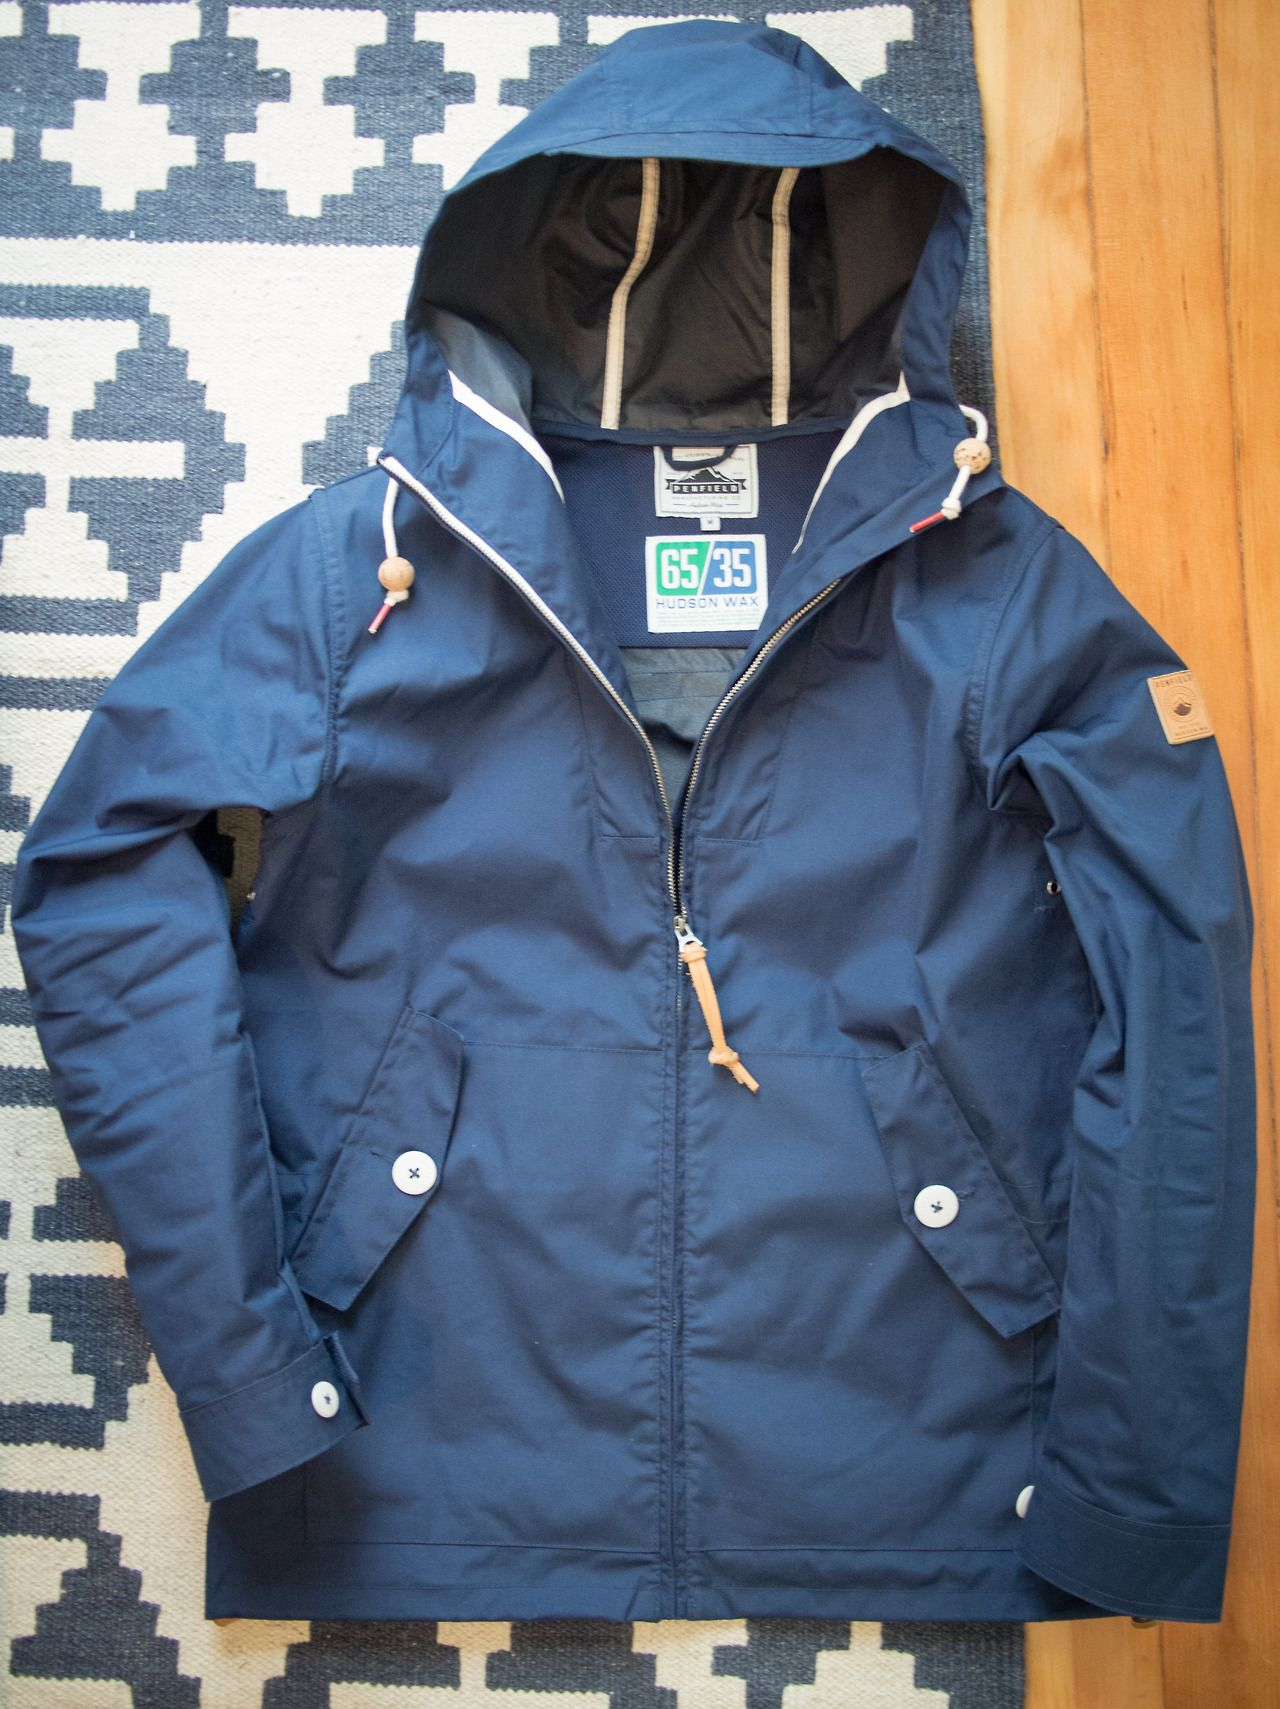 great adirondack jacket avail at JCrew. I got knock-off form Old Navy for a  steal! 5ac328445de